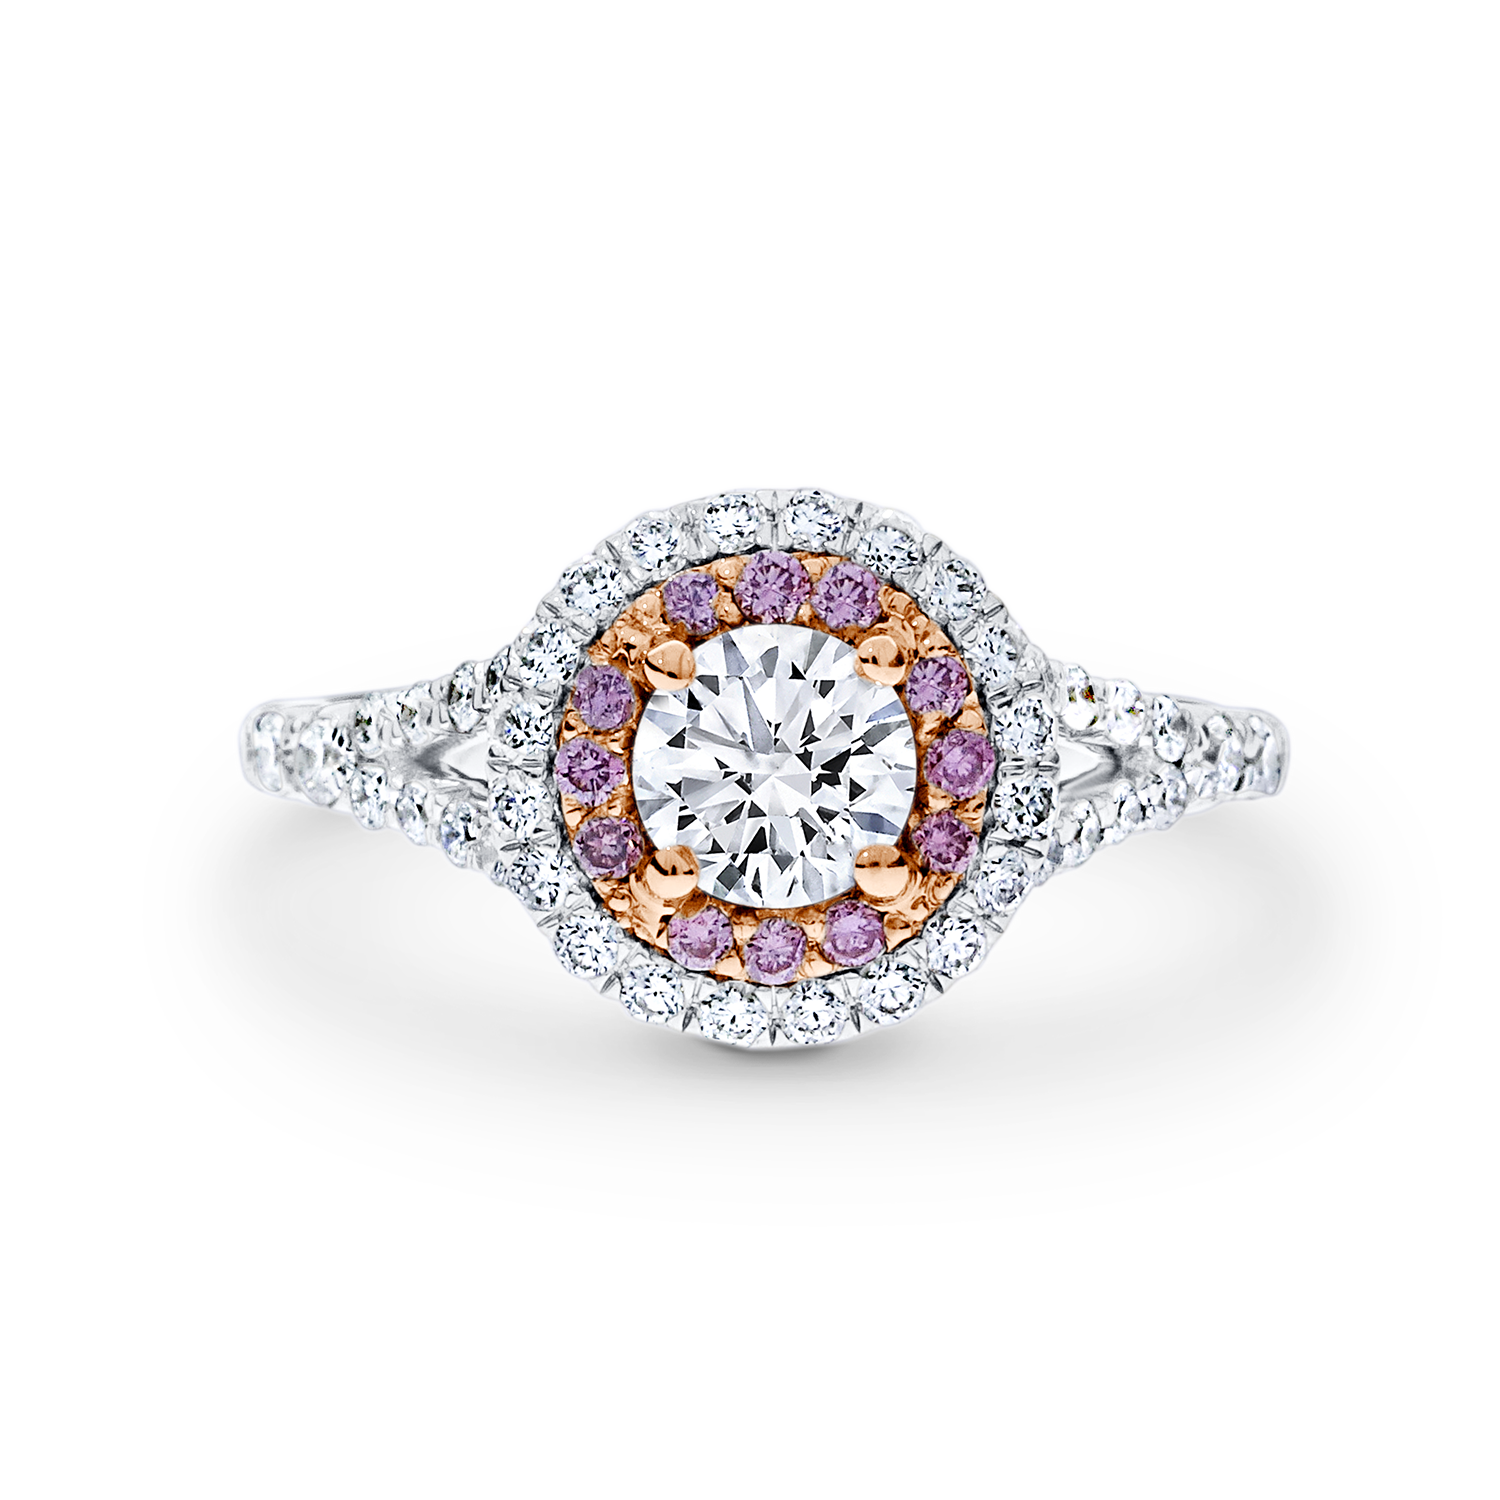 ring rings promise fake of jewellery engagement diamond and sapphire xvdushg wedding pink ideas